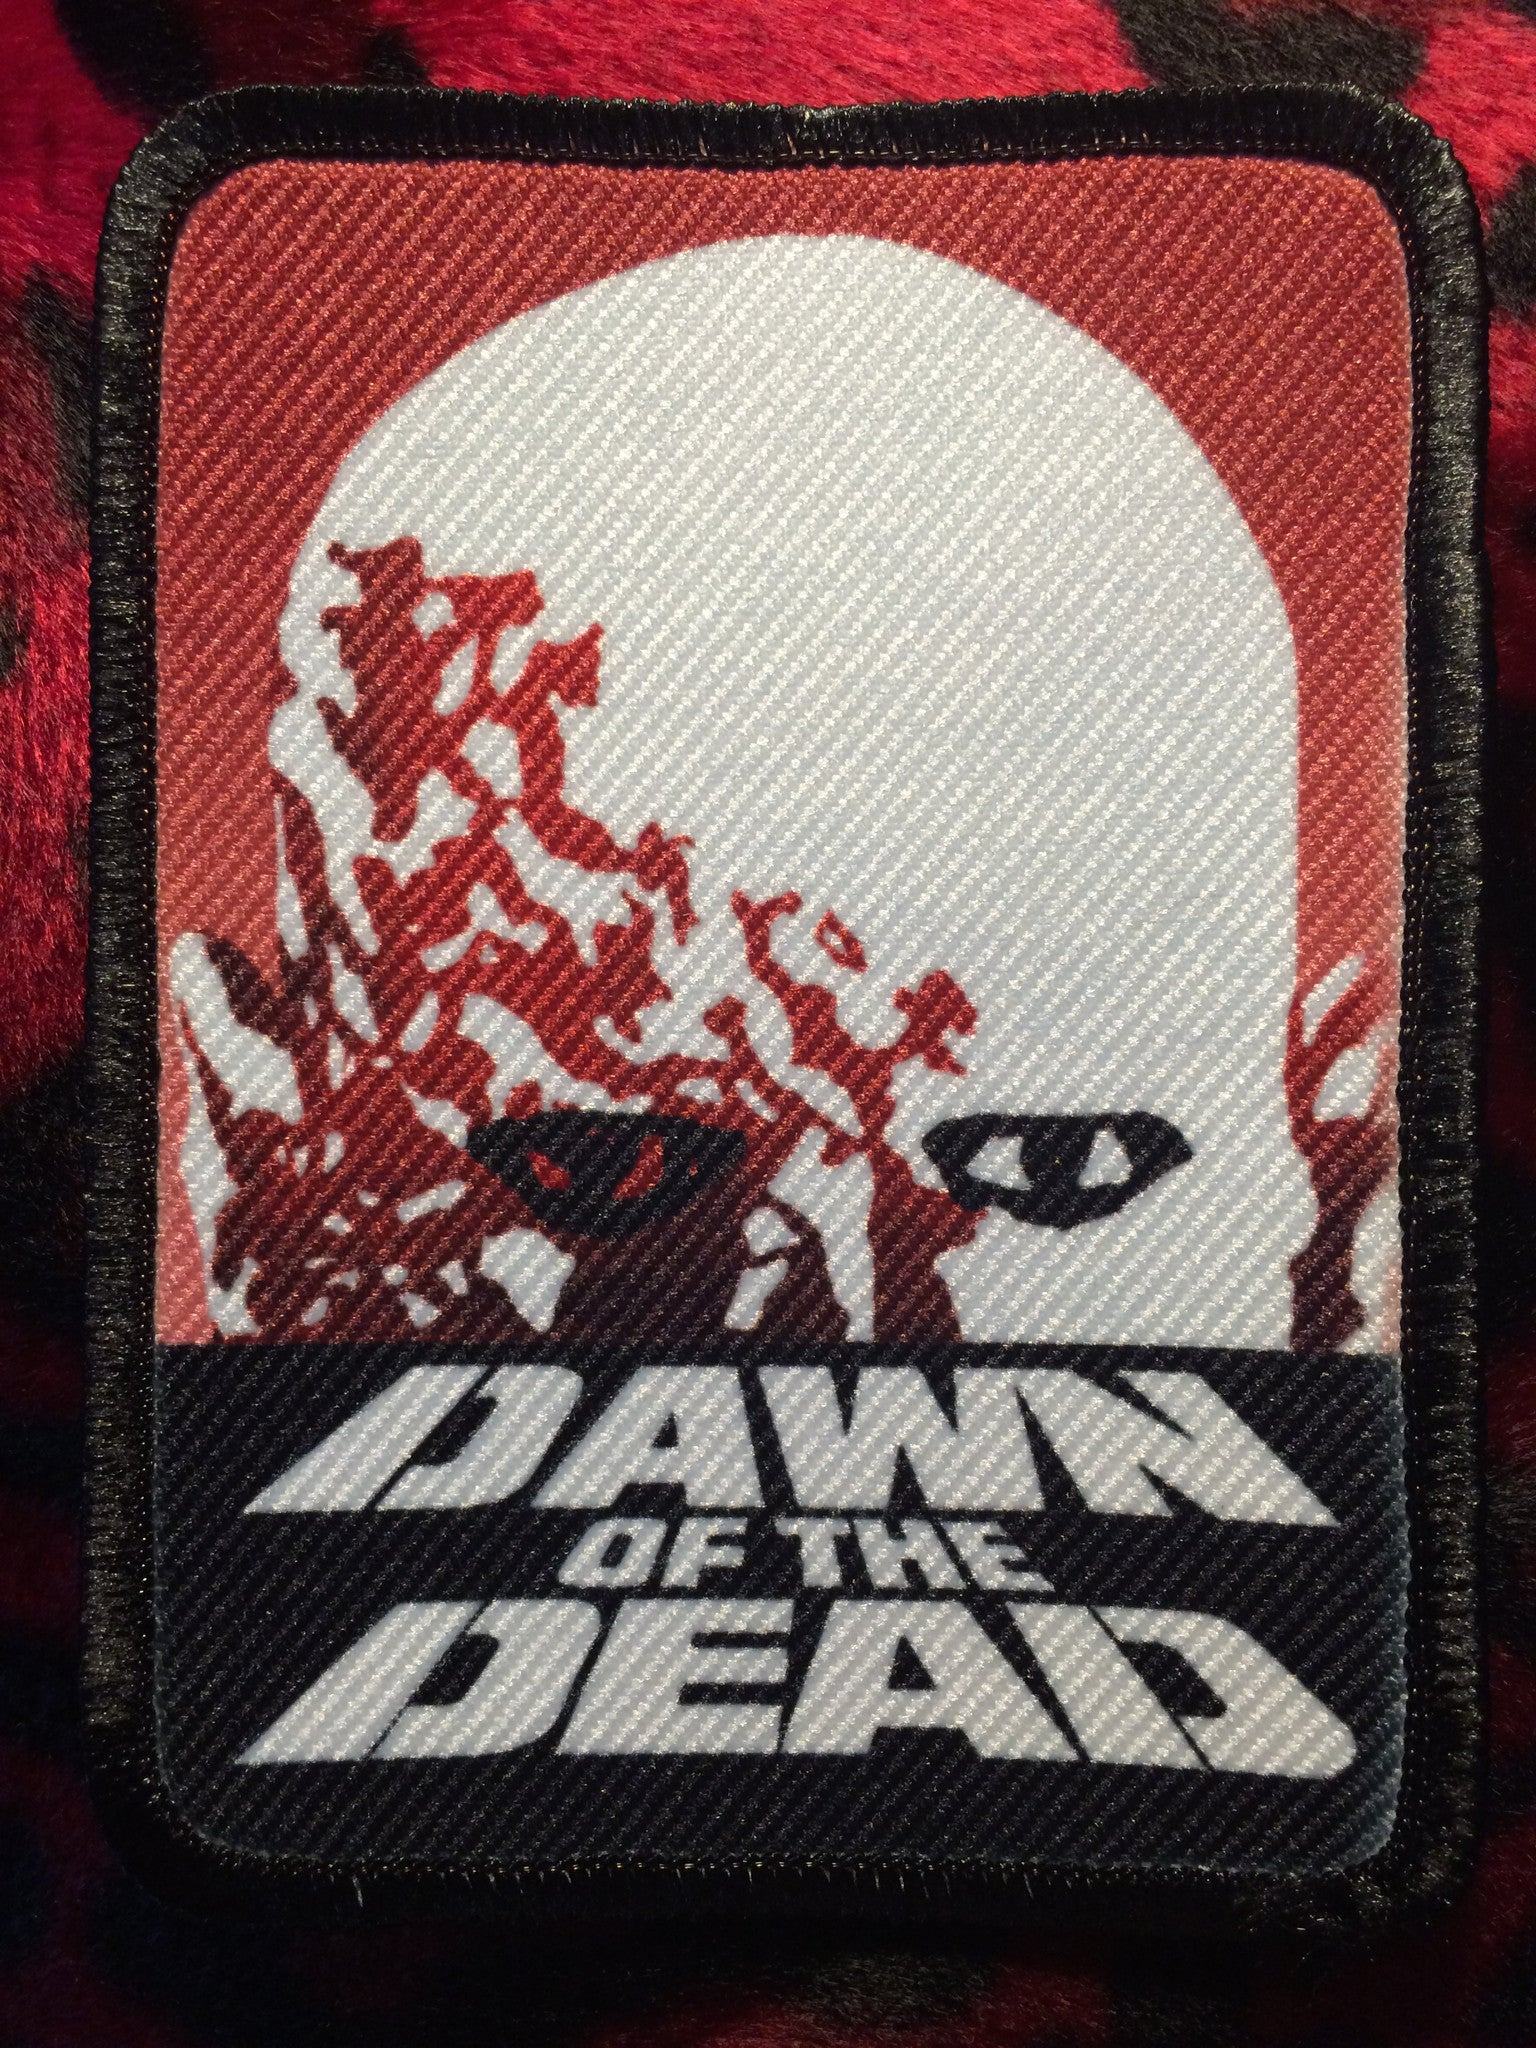 Dawn of the Dead Style A Patch